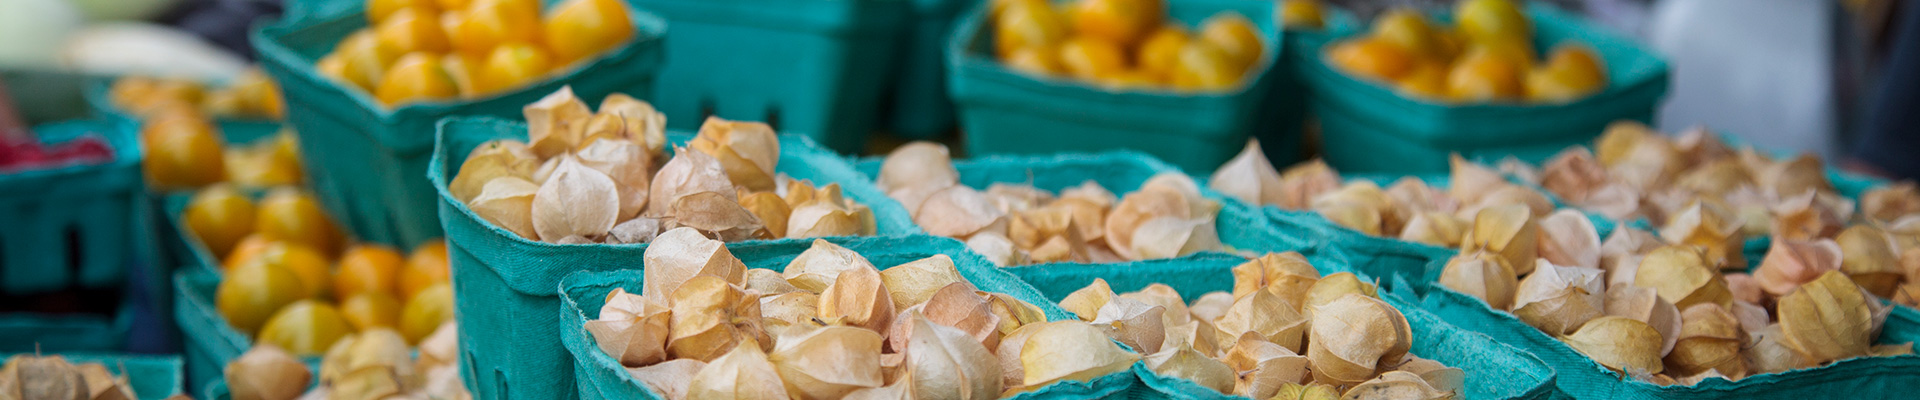 Photo-Ground-Cherries-2014-08-23-Greenbelt-Harvest-Picnic-2014-203.jpg